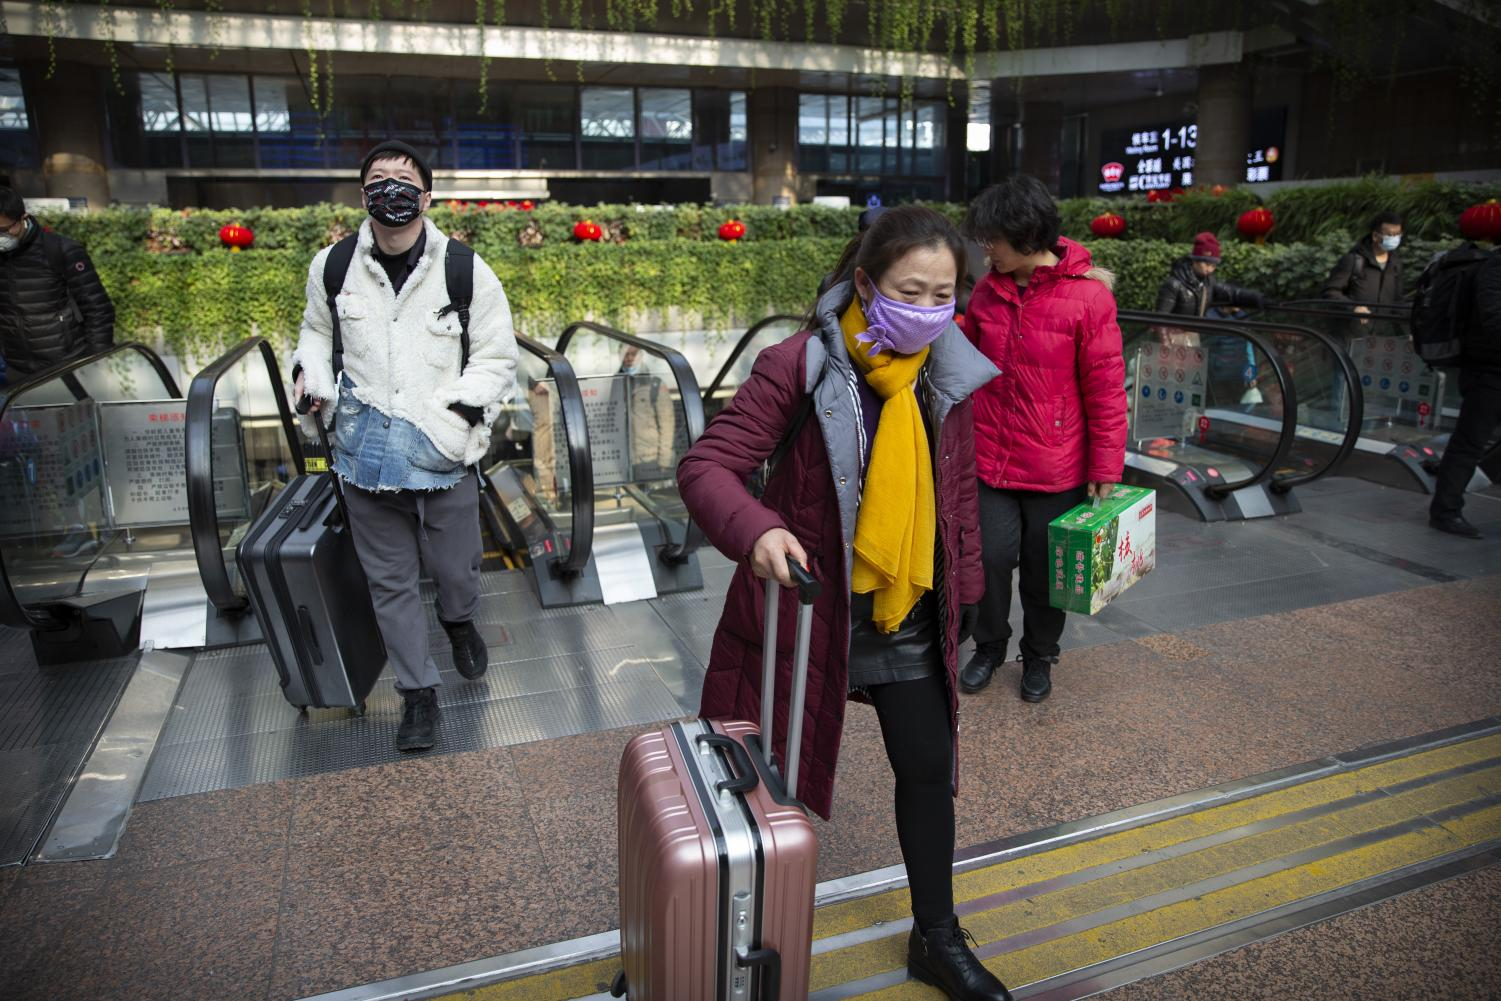 Hong Kong citizens wear masks to protect themselves from the Coronavirus that has paralyzed the special administrative region of China.